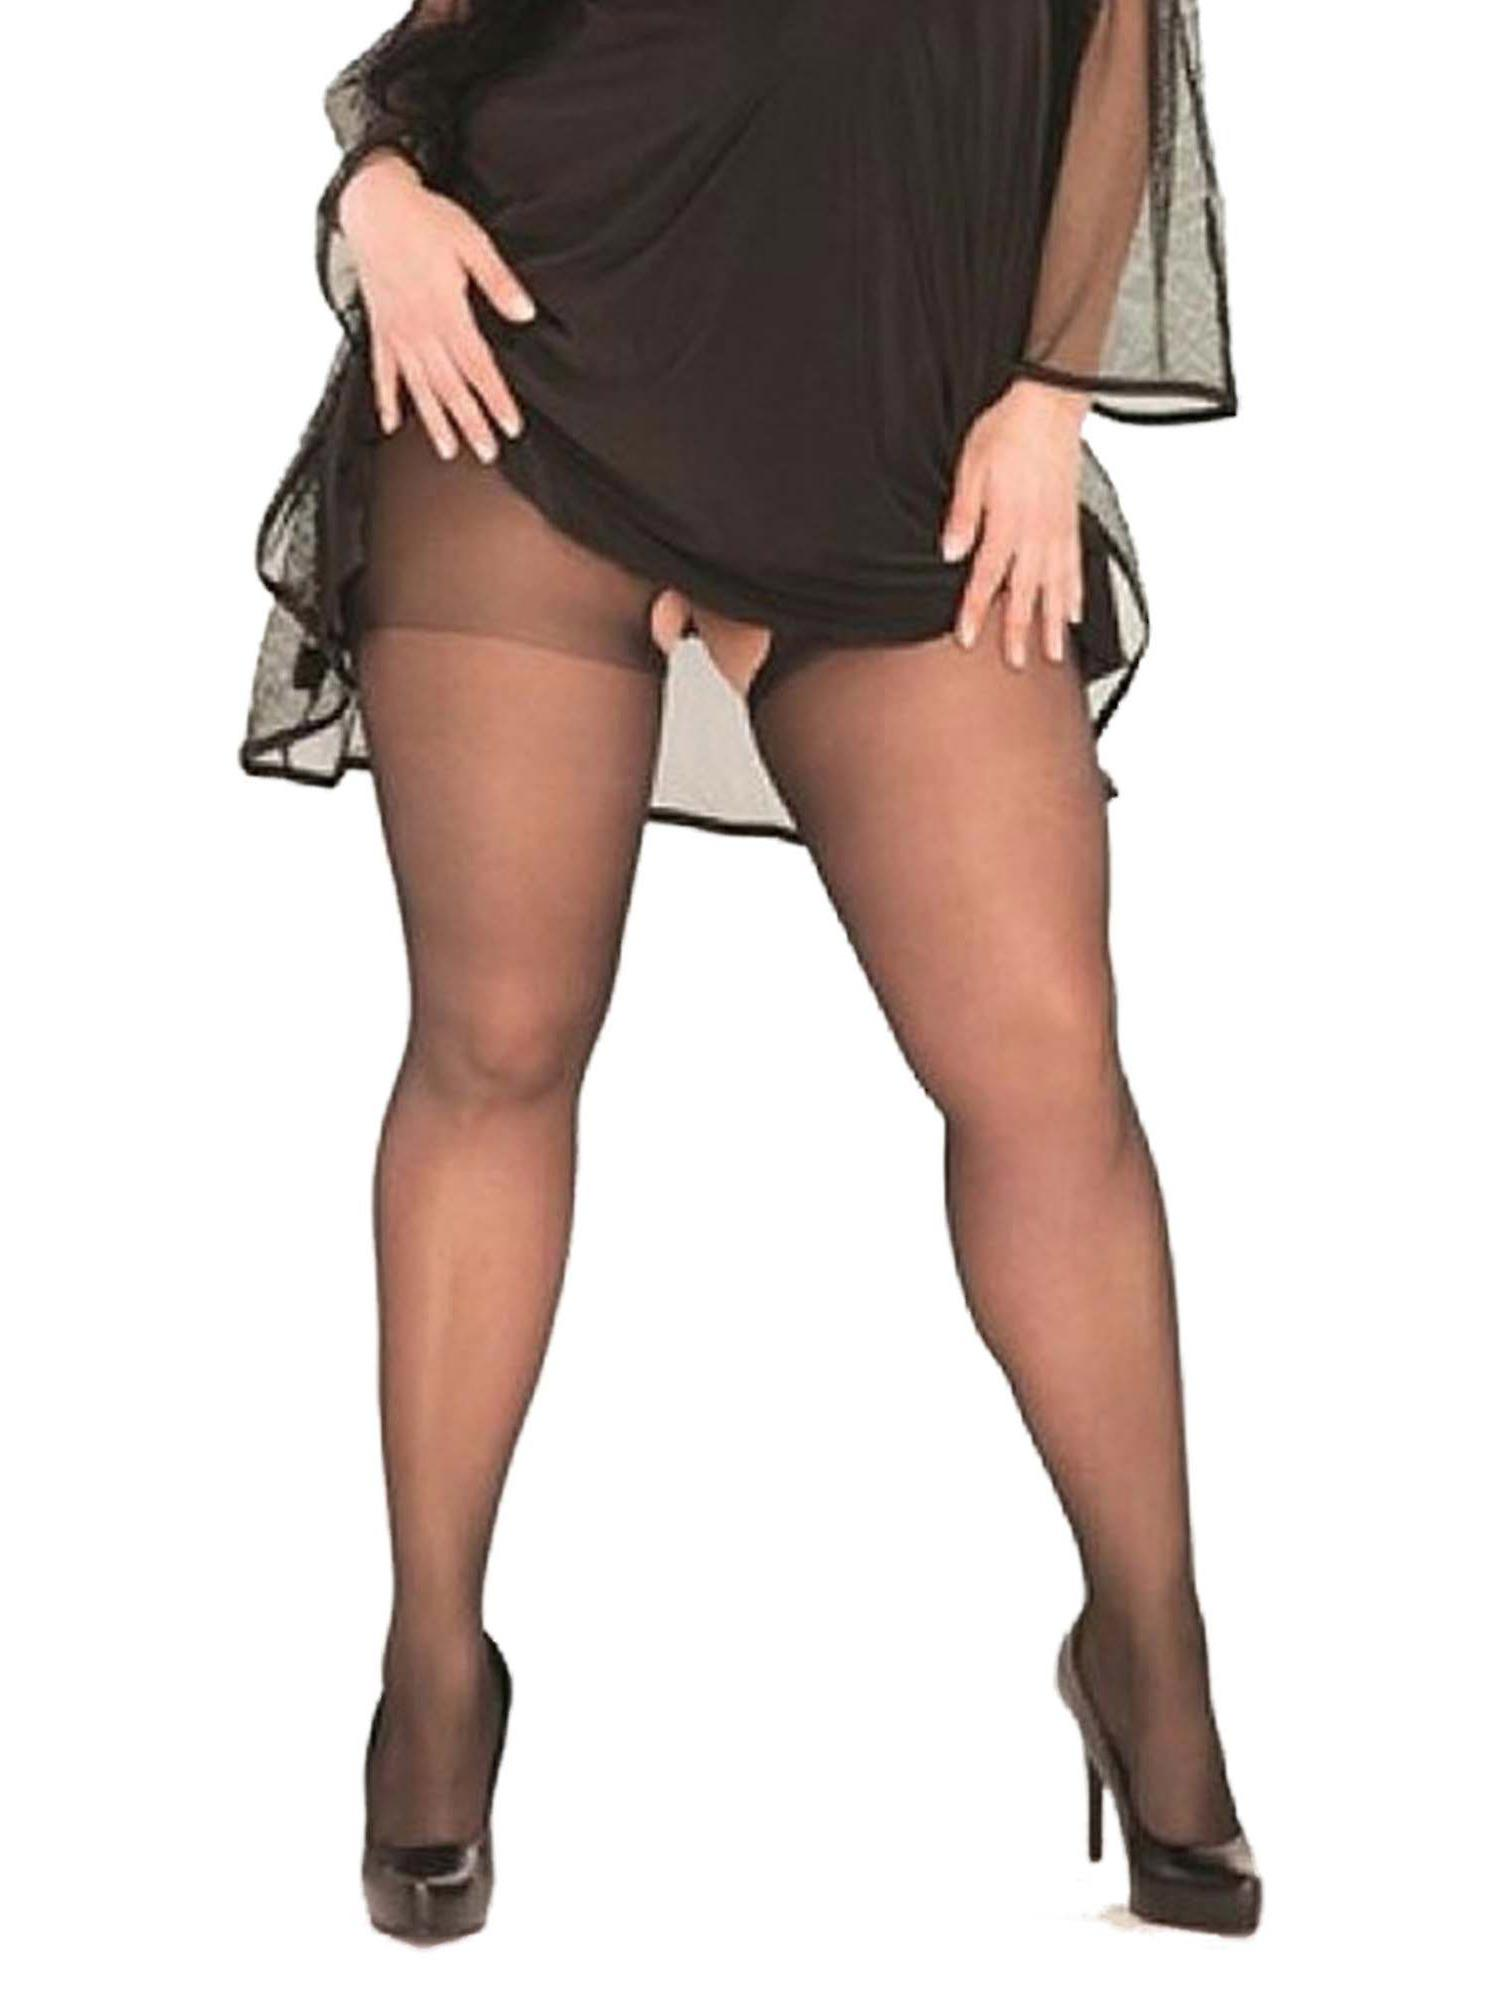 502aca83c1f Womens Sexy Plus Size Black Sheer Crotchless Pantyhose Hosiery Stockings  Tights